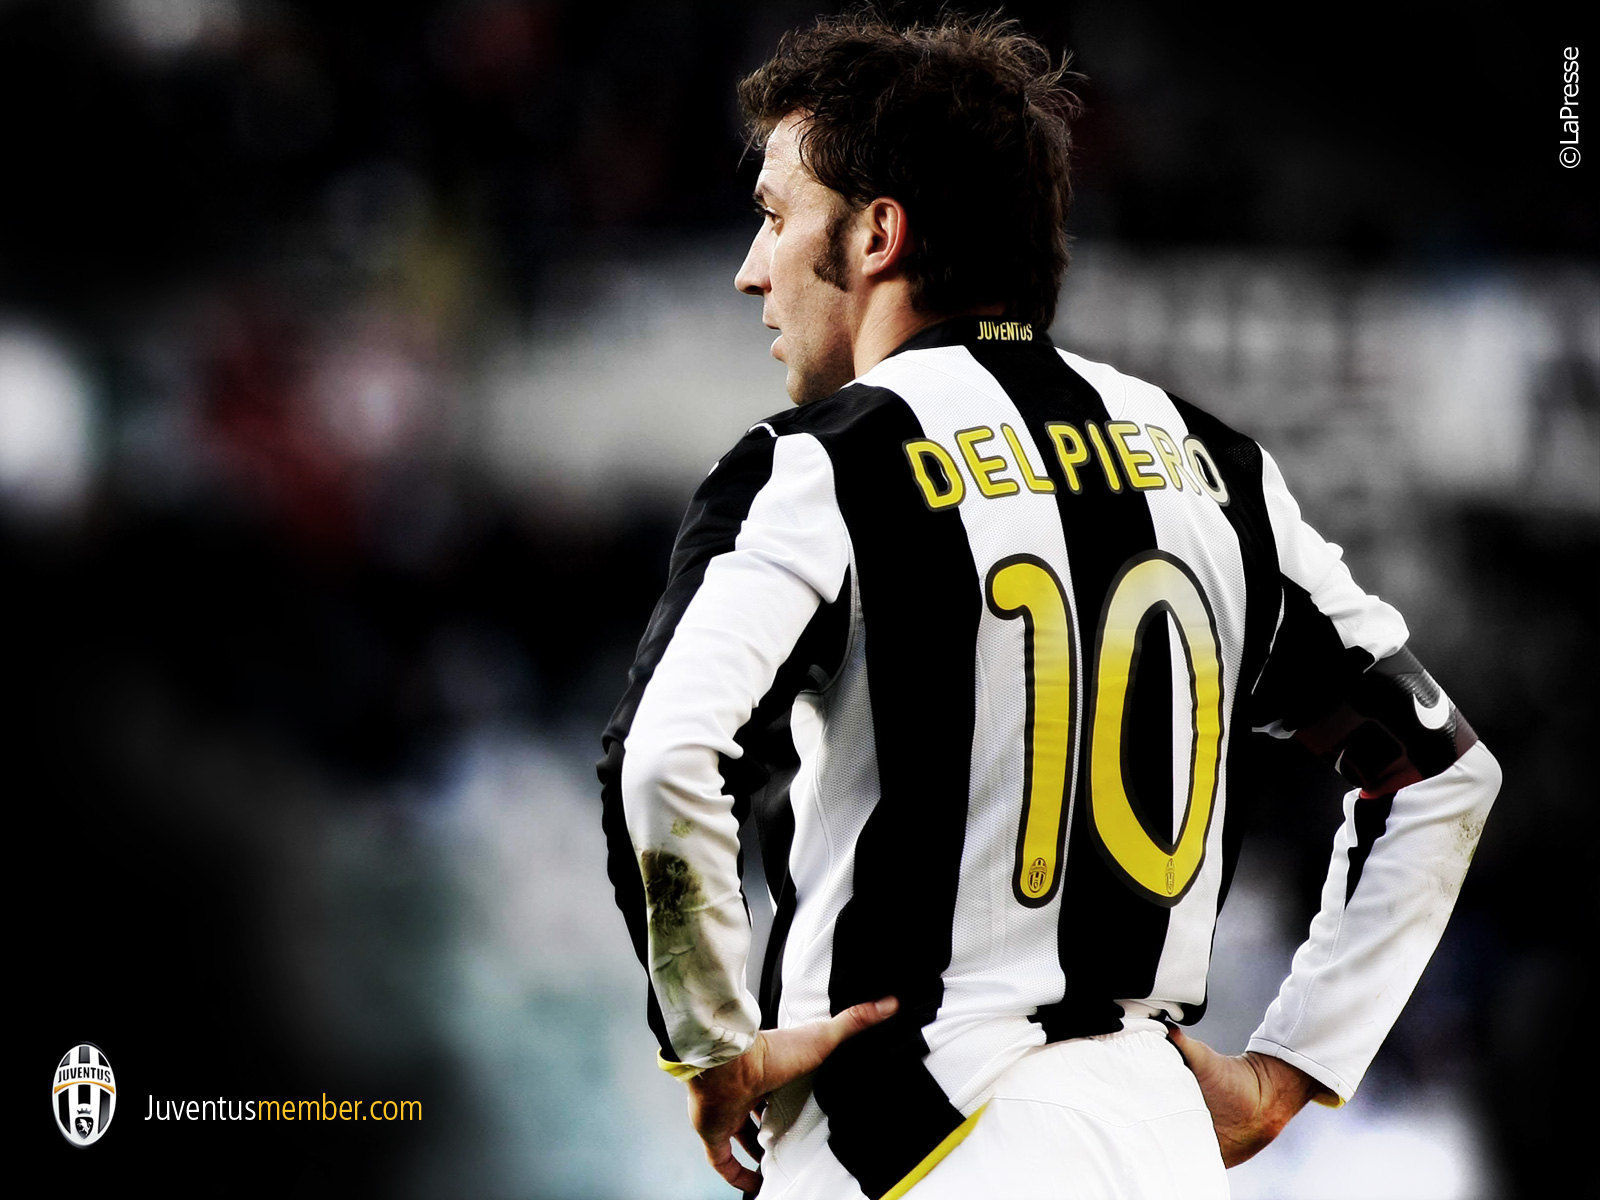 Alessandro Del Piero - Wallpaper Colection